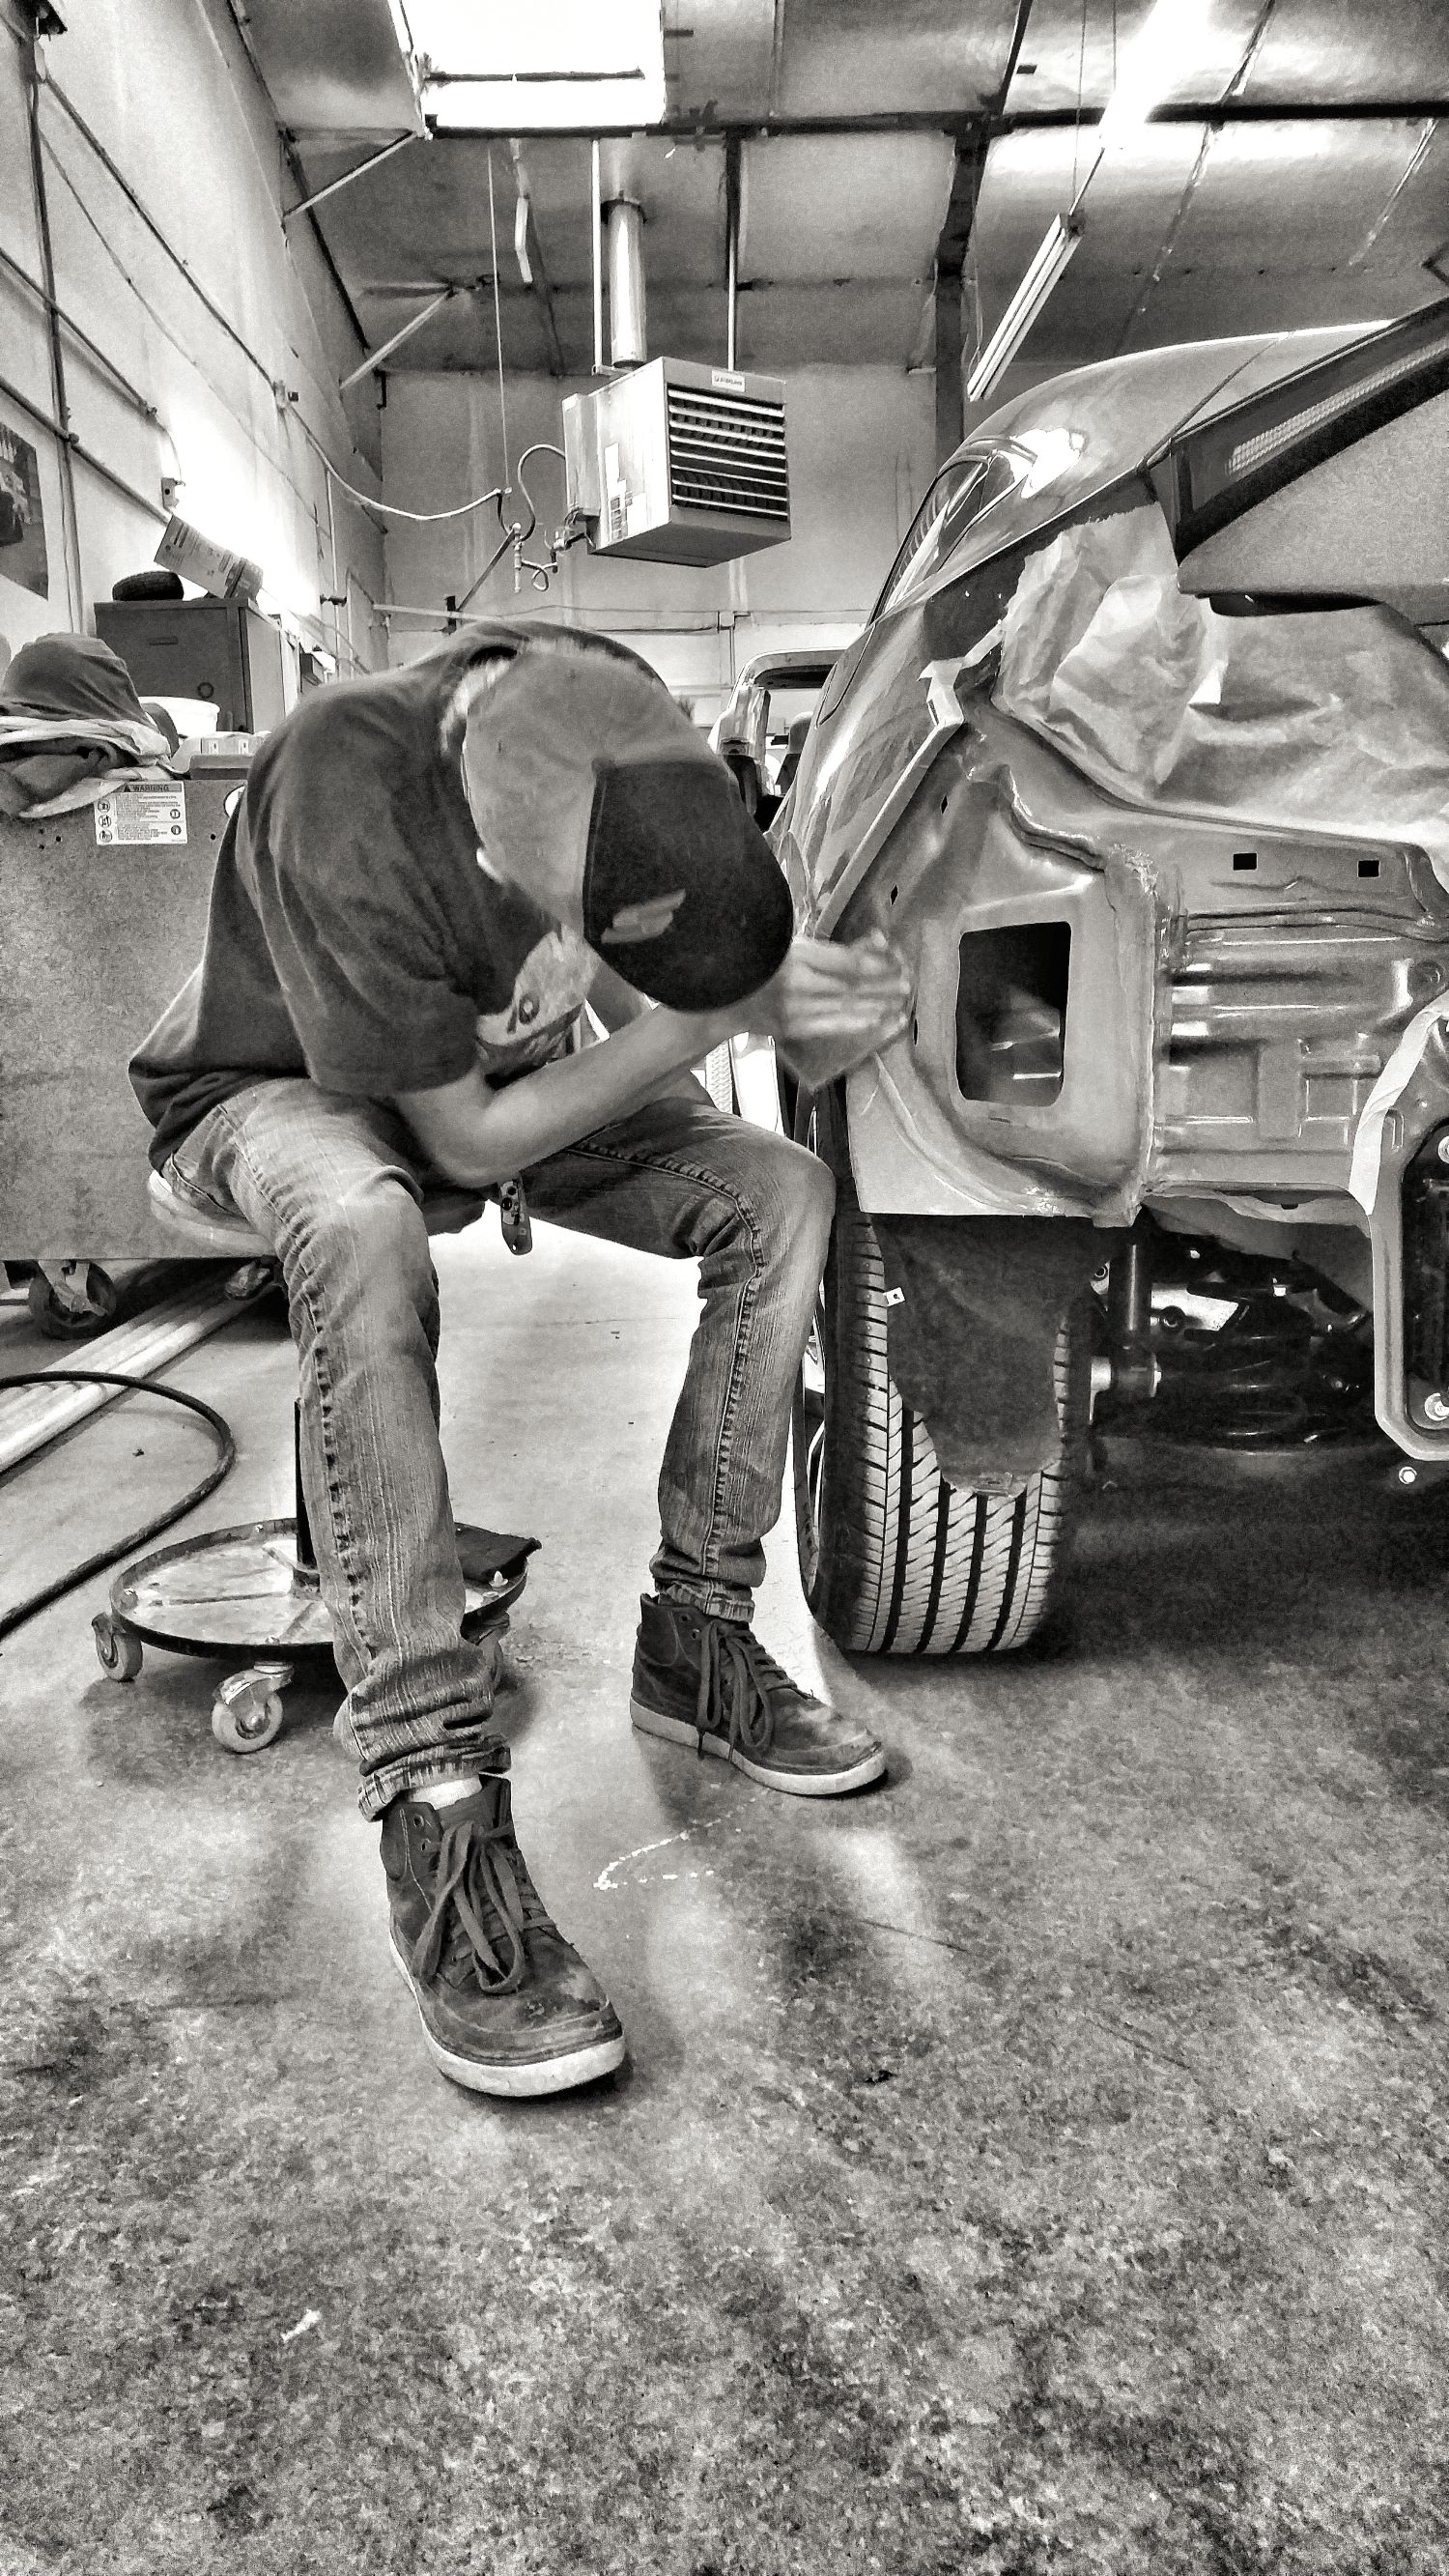 Gentleman is sanding a car for auto body repairs.